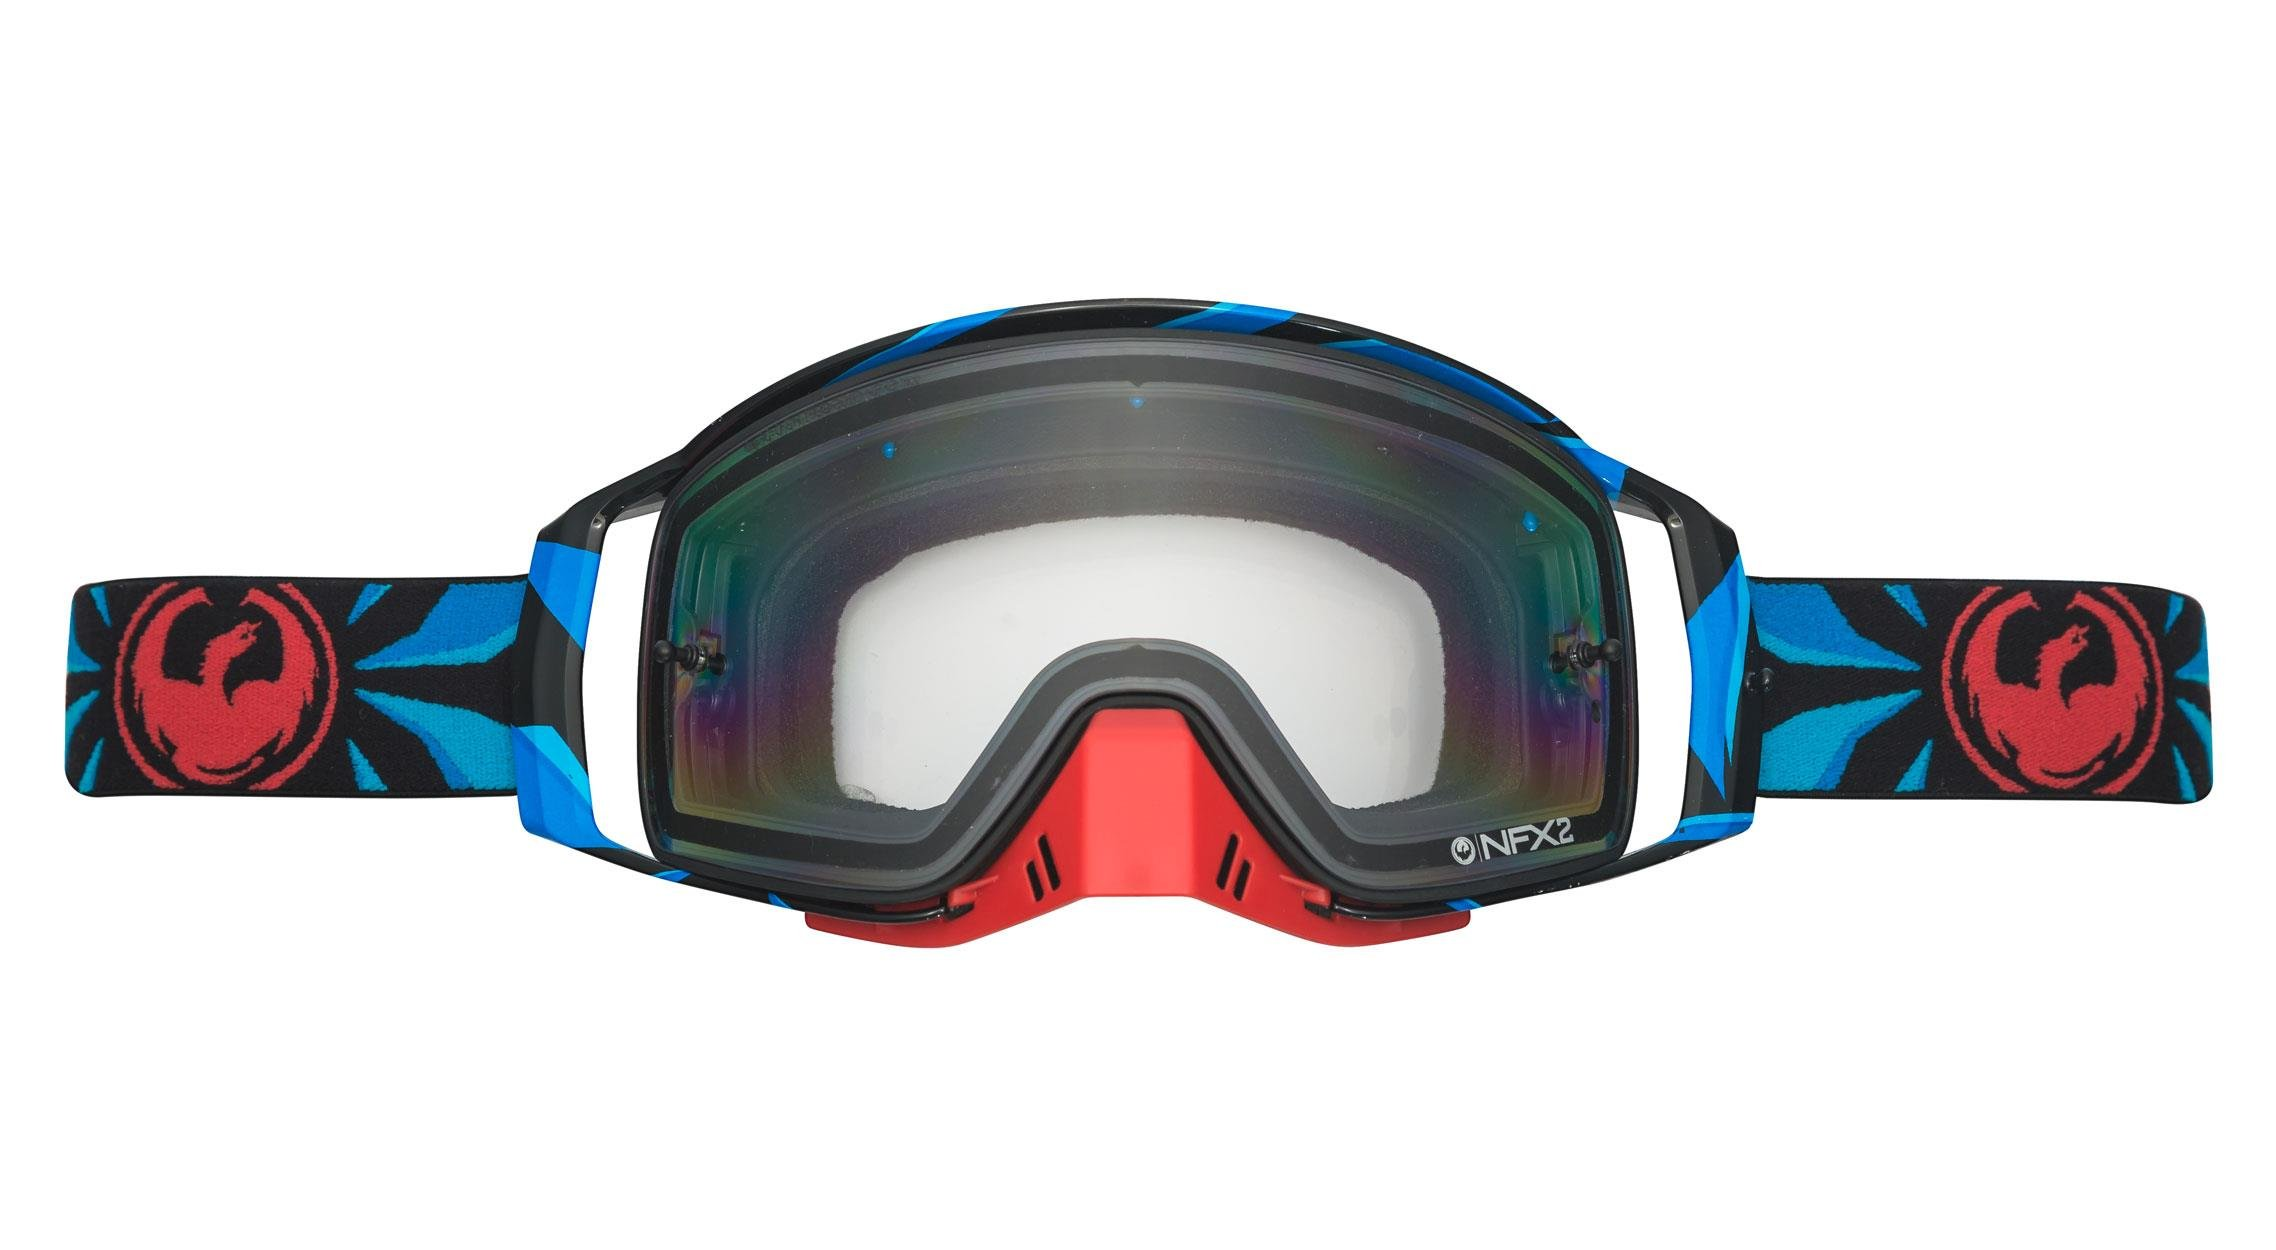 Dragon Alliance Factor Unisex NFX2 Goggles Eyewear, Injected Clear, One Size